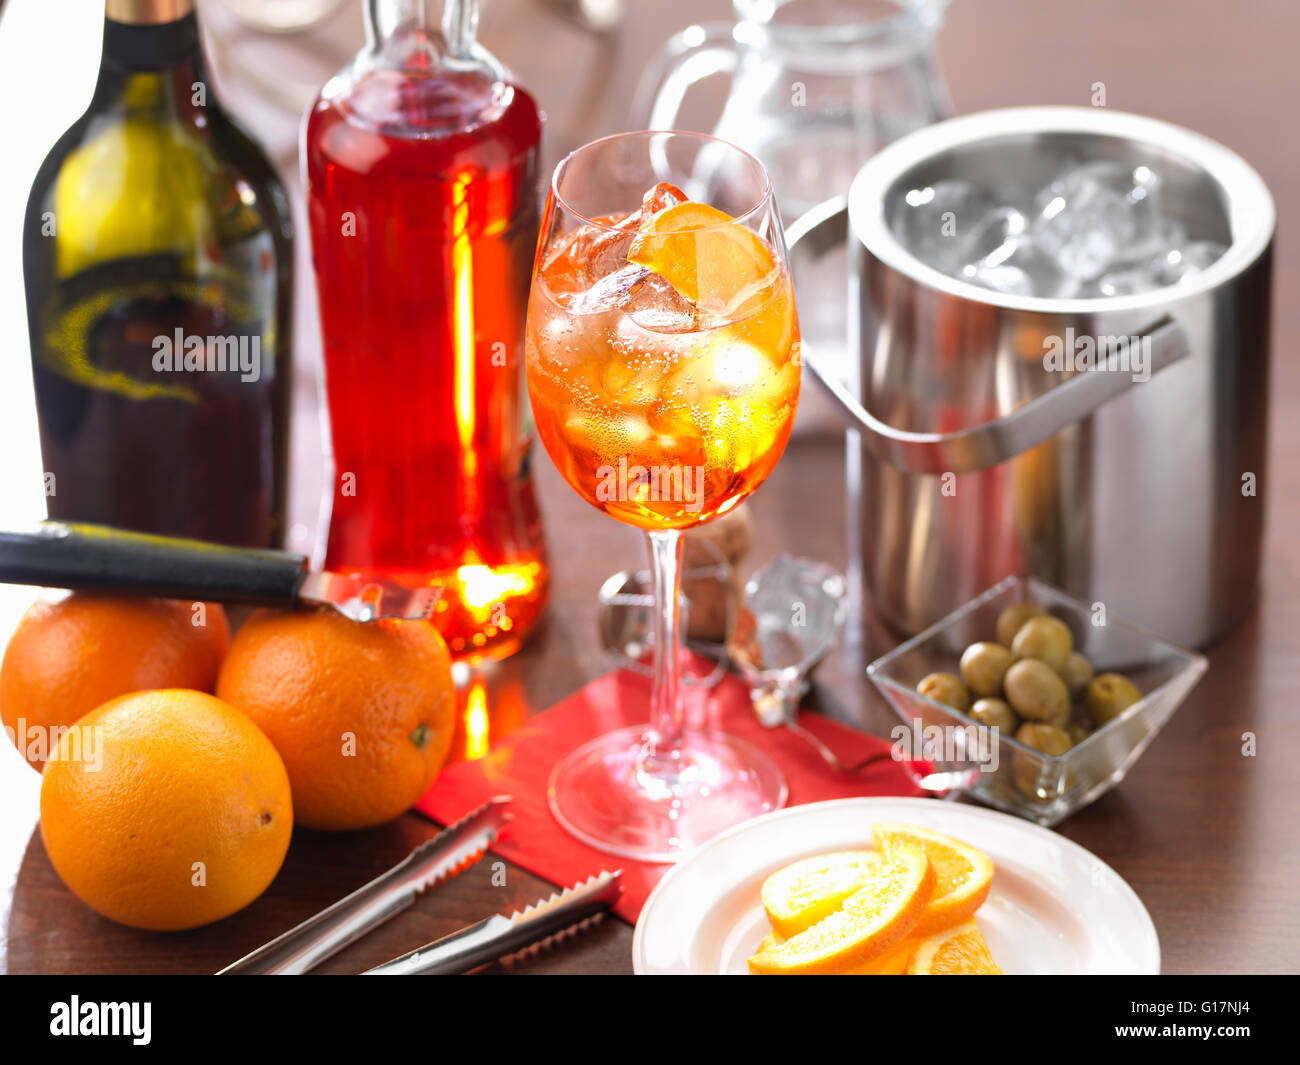 Boissons Aperol Spritz traditionnel italien Photo Stock